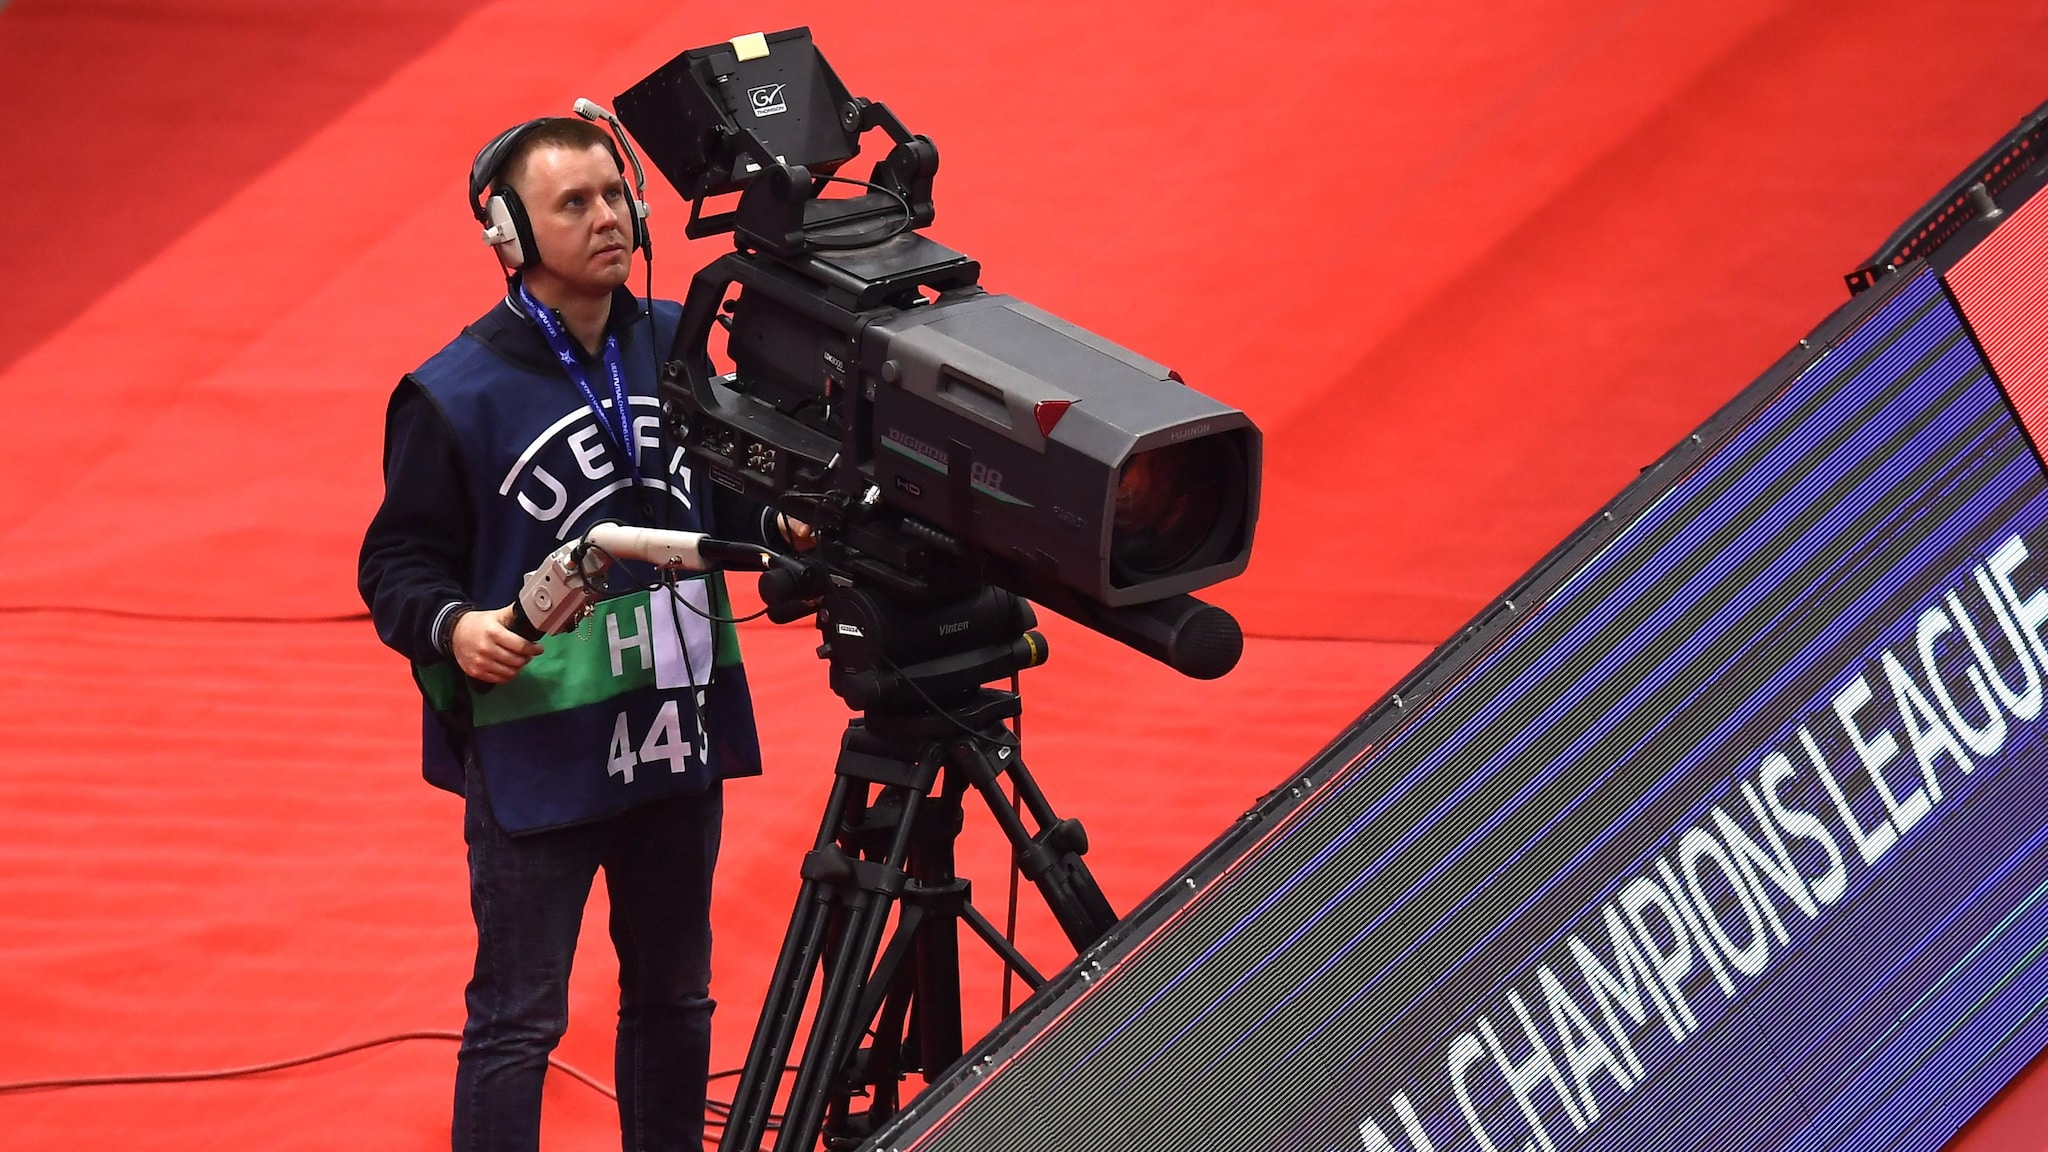 TV & Live Broadcast: Where is the UEFA Champions League Futsal Going?  |  Futsal Champions League